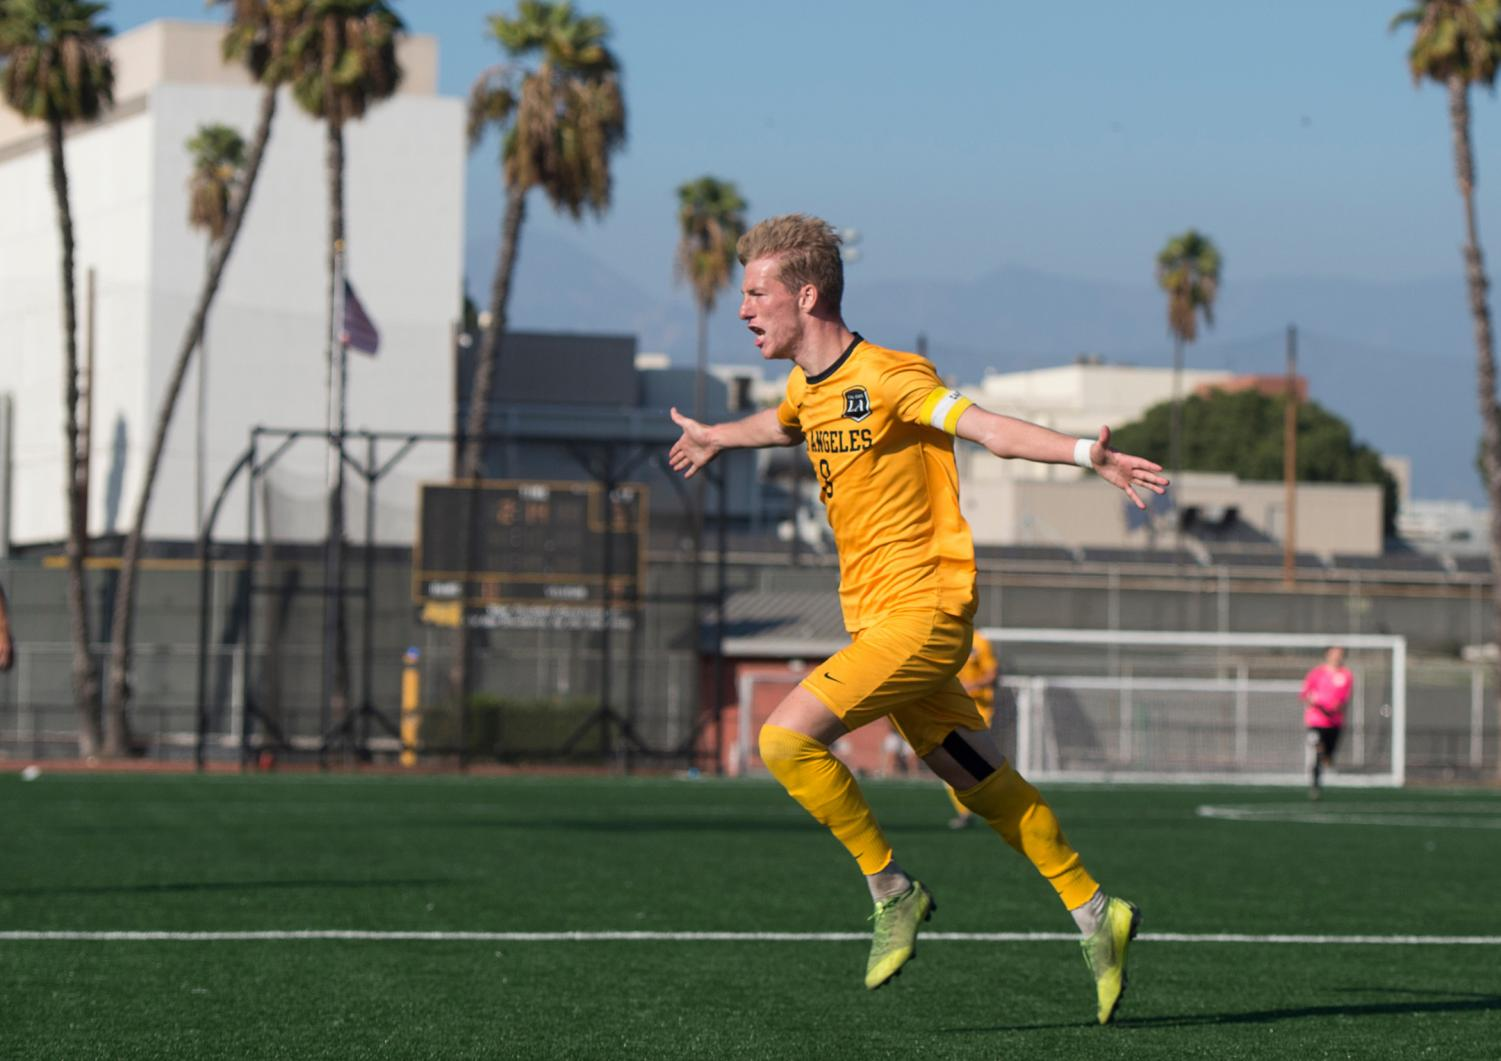 Cal State LA men's soccer team edged-out Sonoma State 1-0.